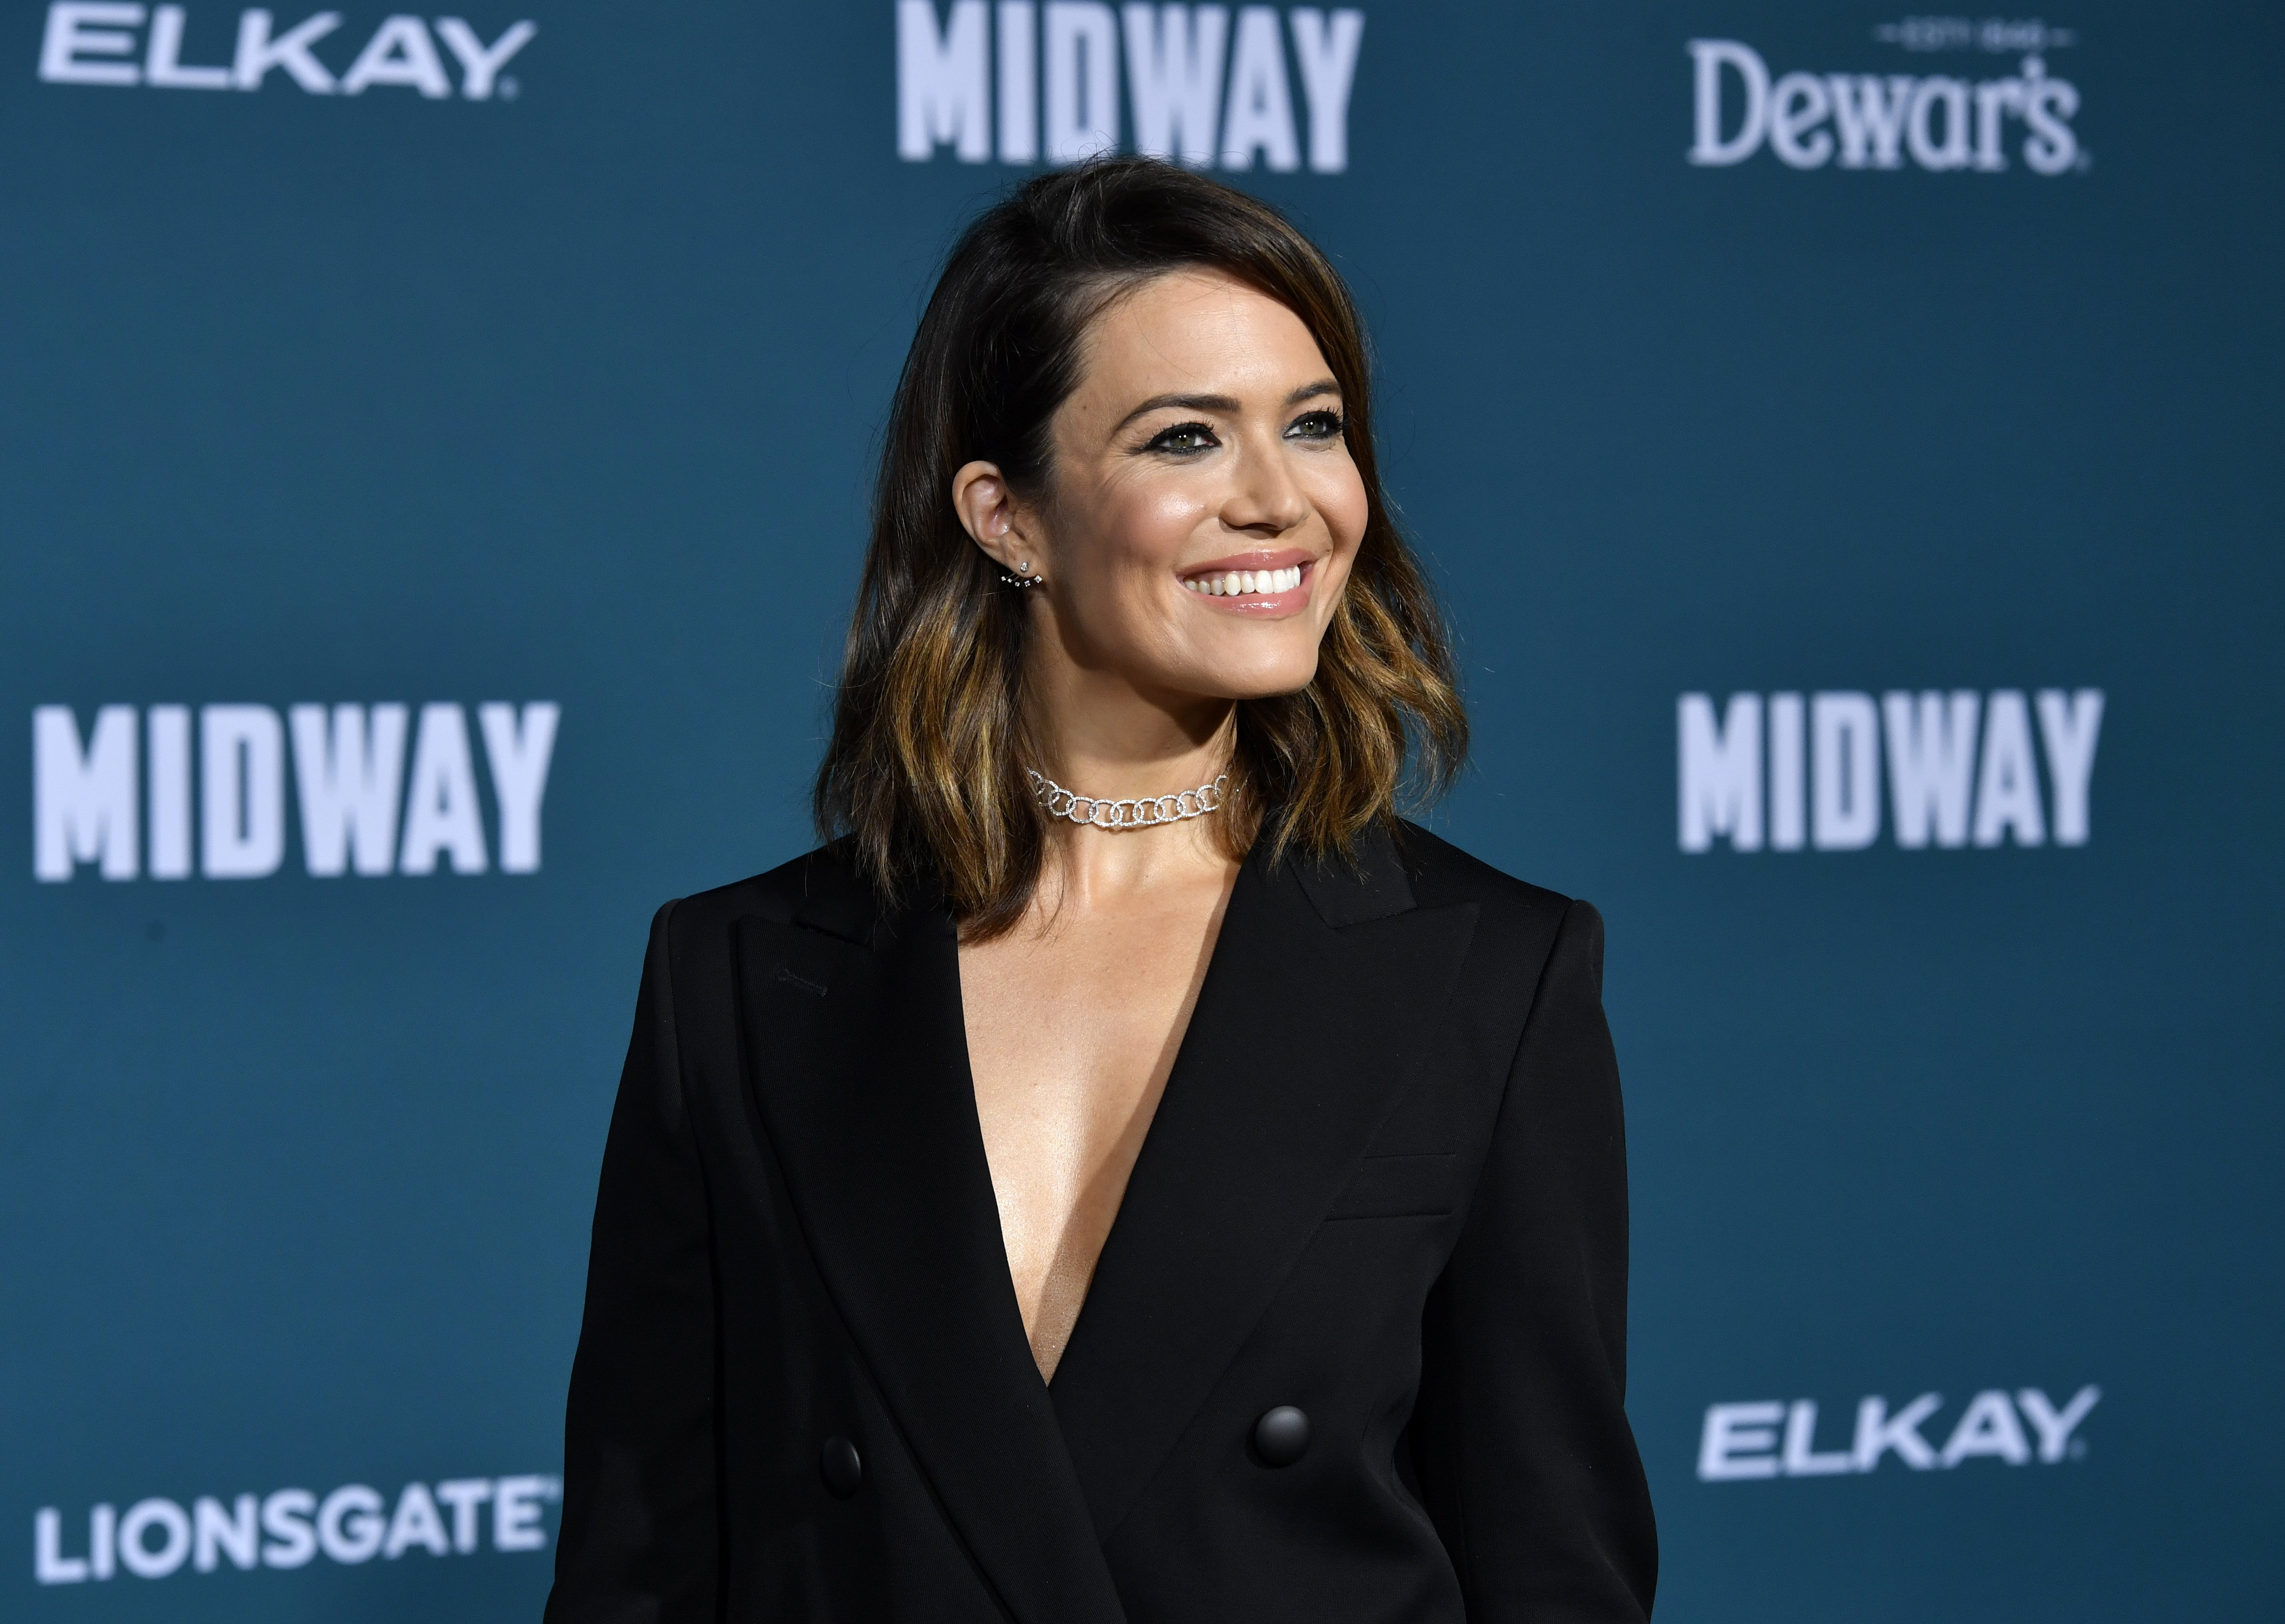 """Mandy Moore attends the premiere of """"Midway"""" in Westwood, California on November 5, 2019 